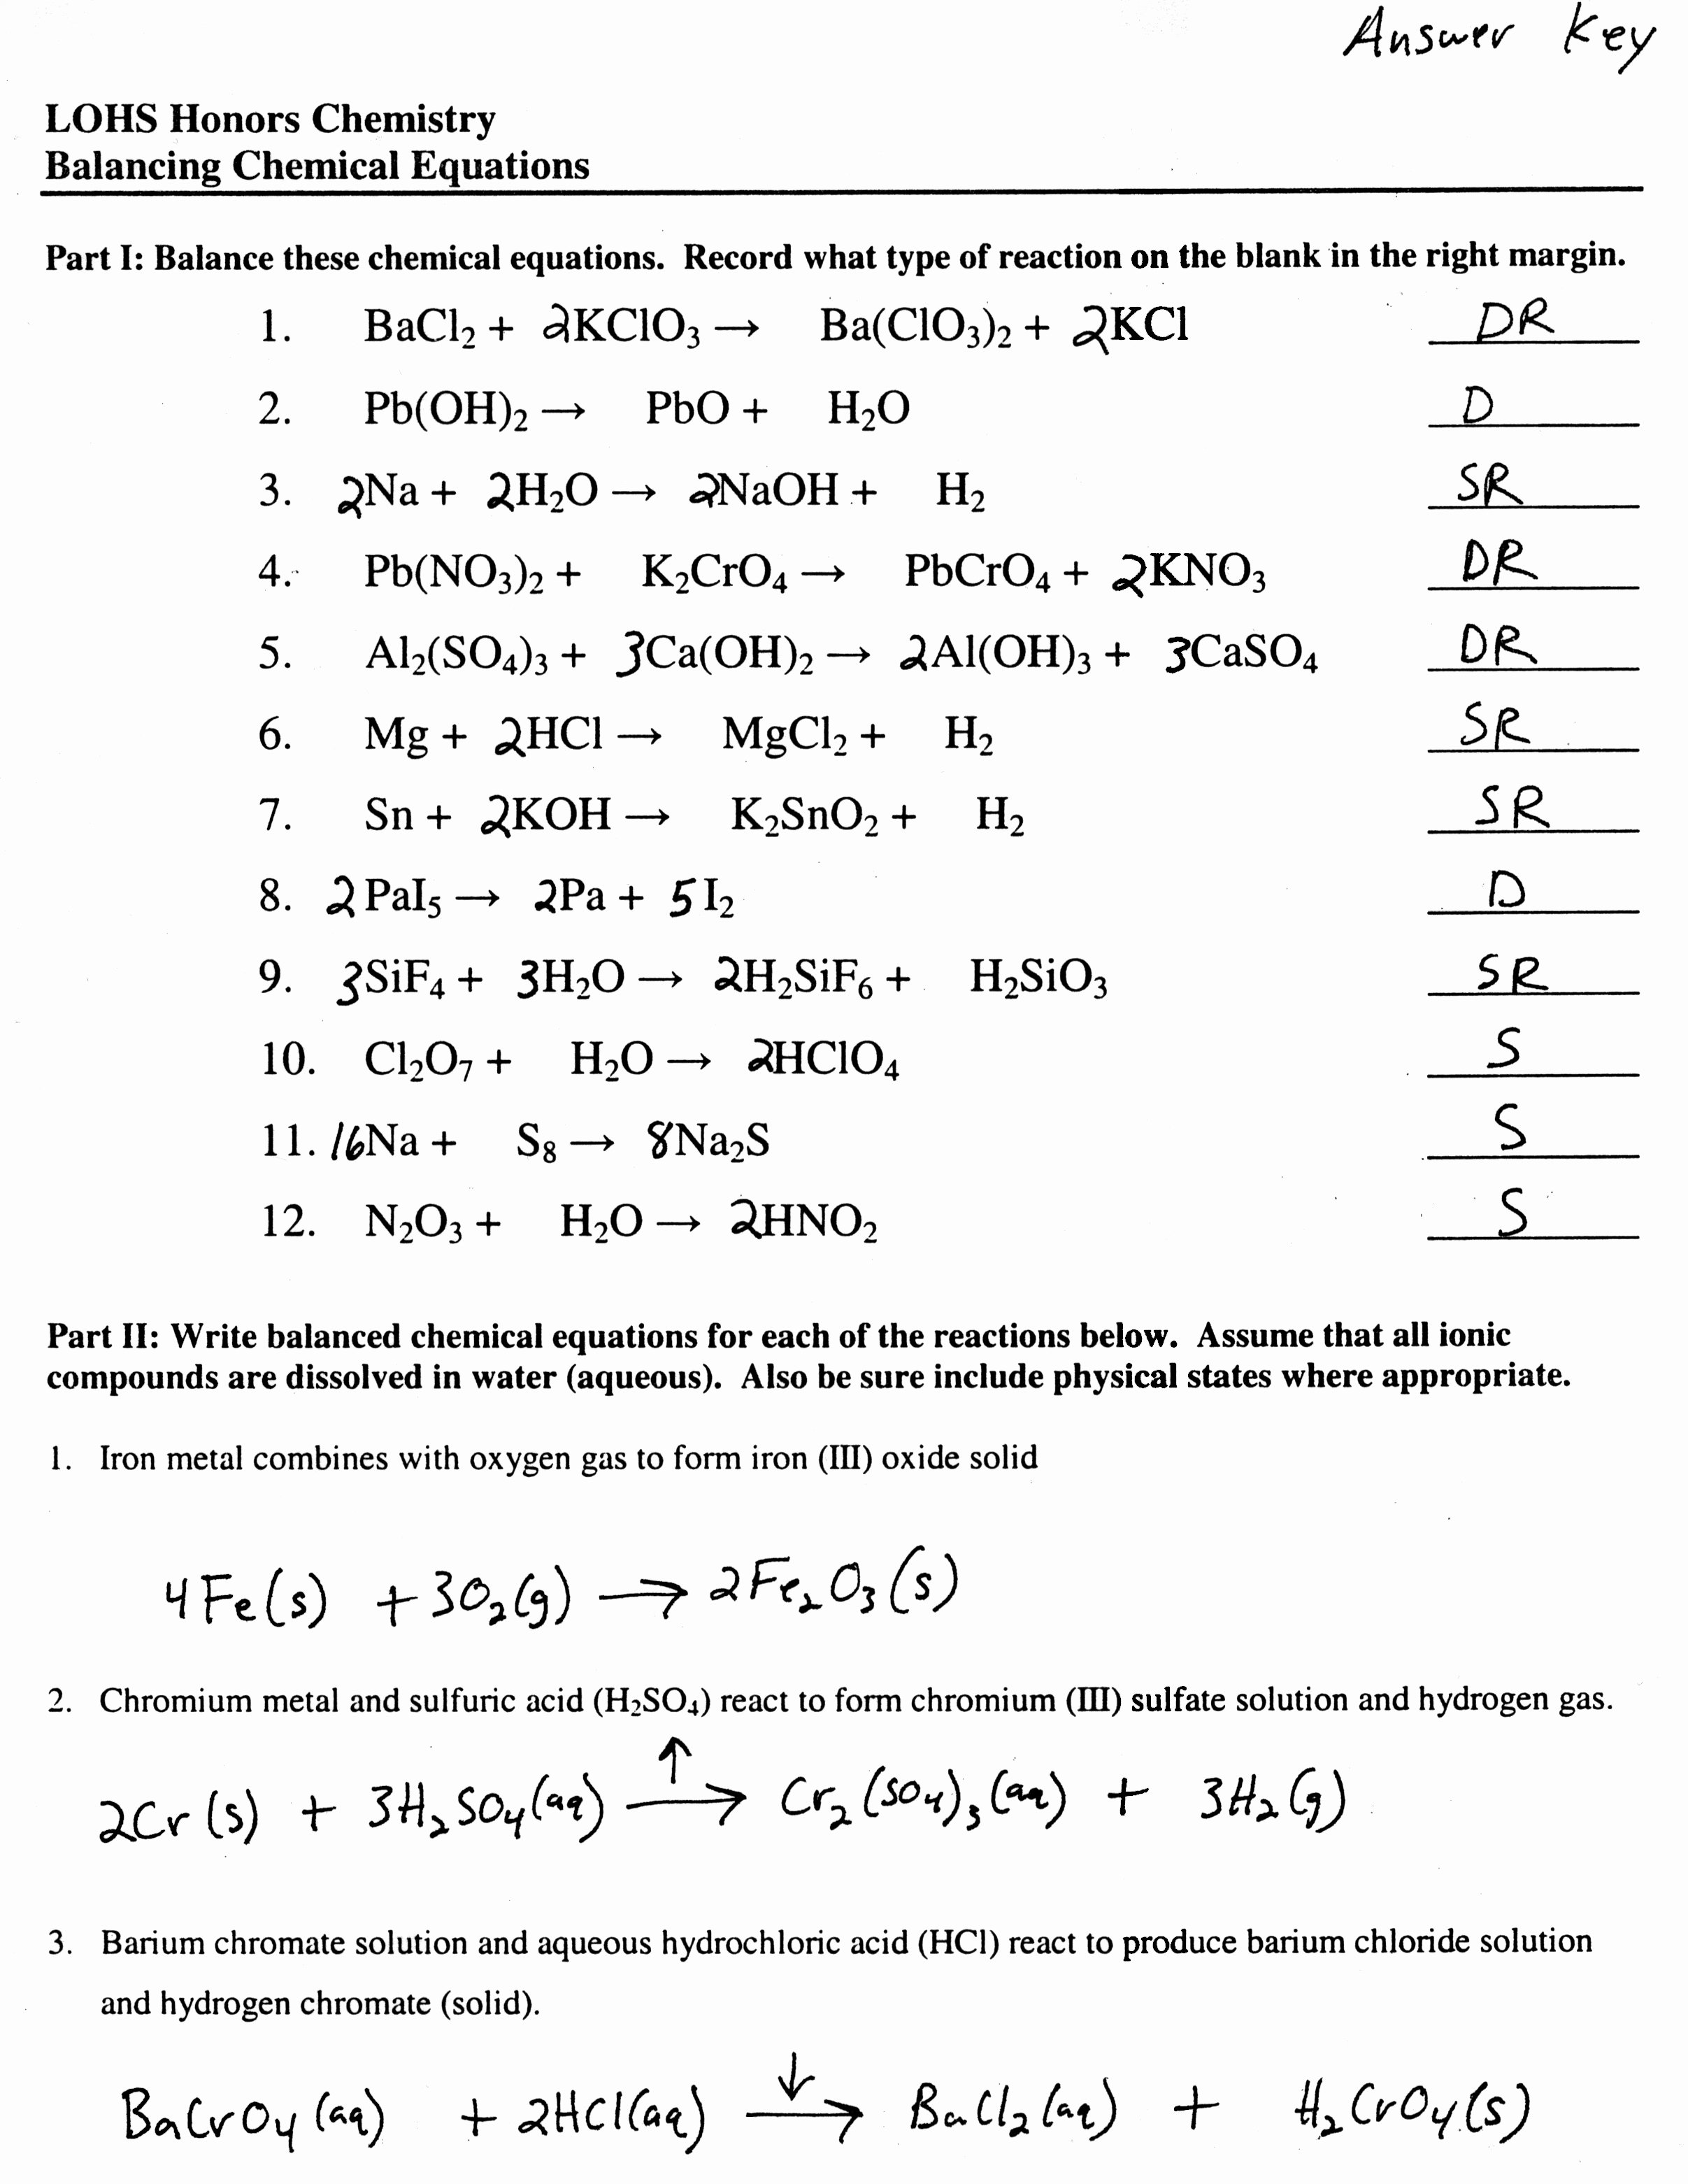 Balancing Equations Worksheet Answers New Balancing Equations Worksheet Health and Fitness Training